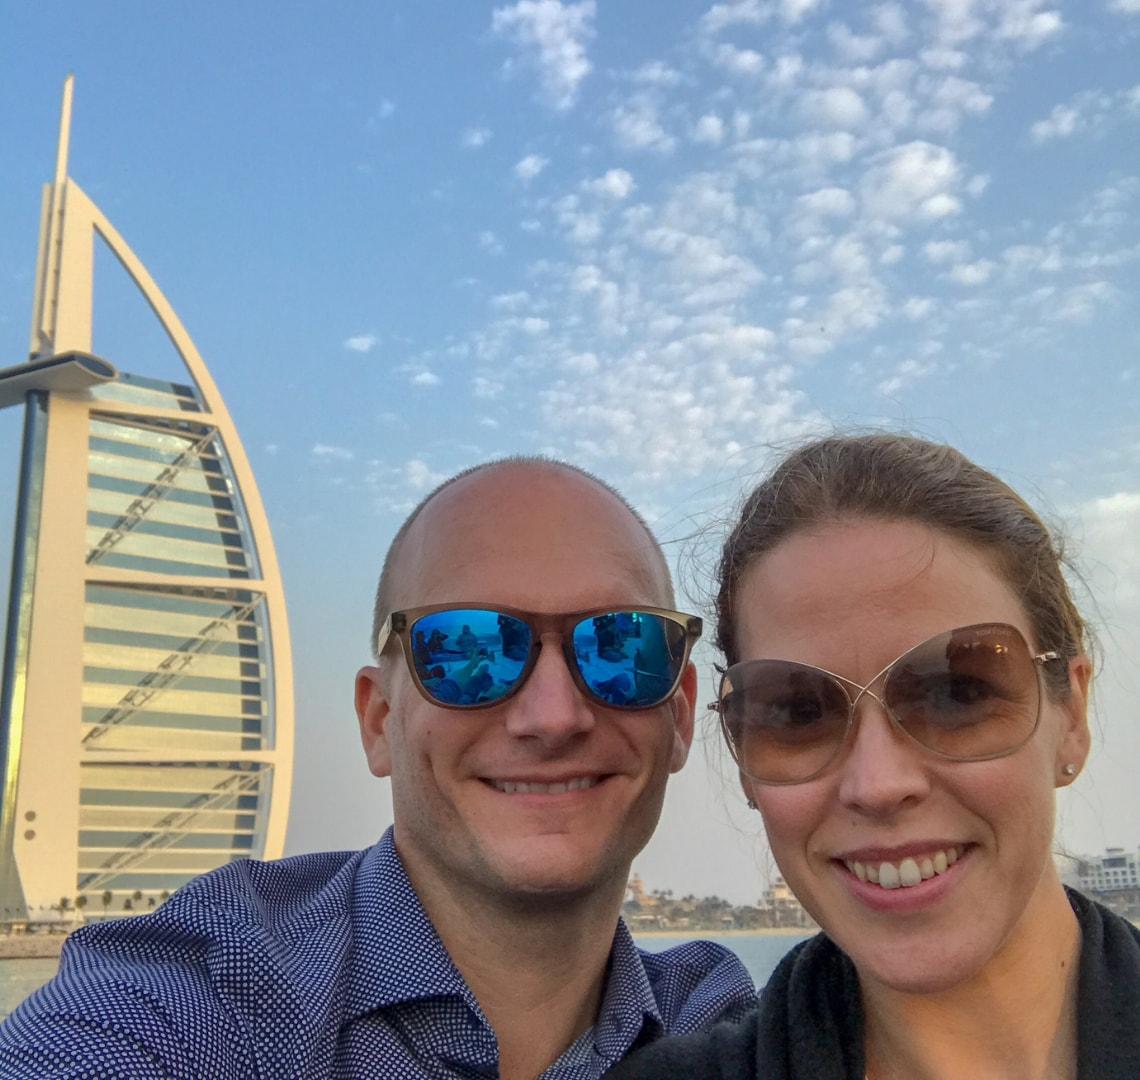 Expat wife - being an expat wife has opened up opportunities that I would never have had. Here are me and Mr Wanderlust taking a selfie in front of the Burj Al Arab